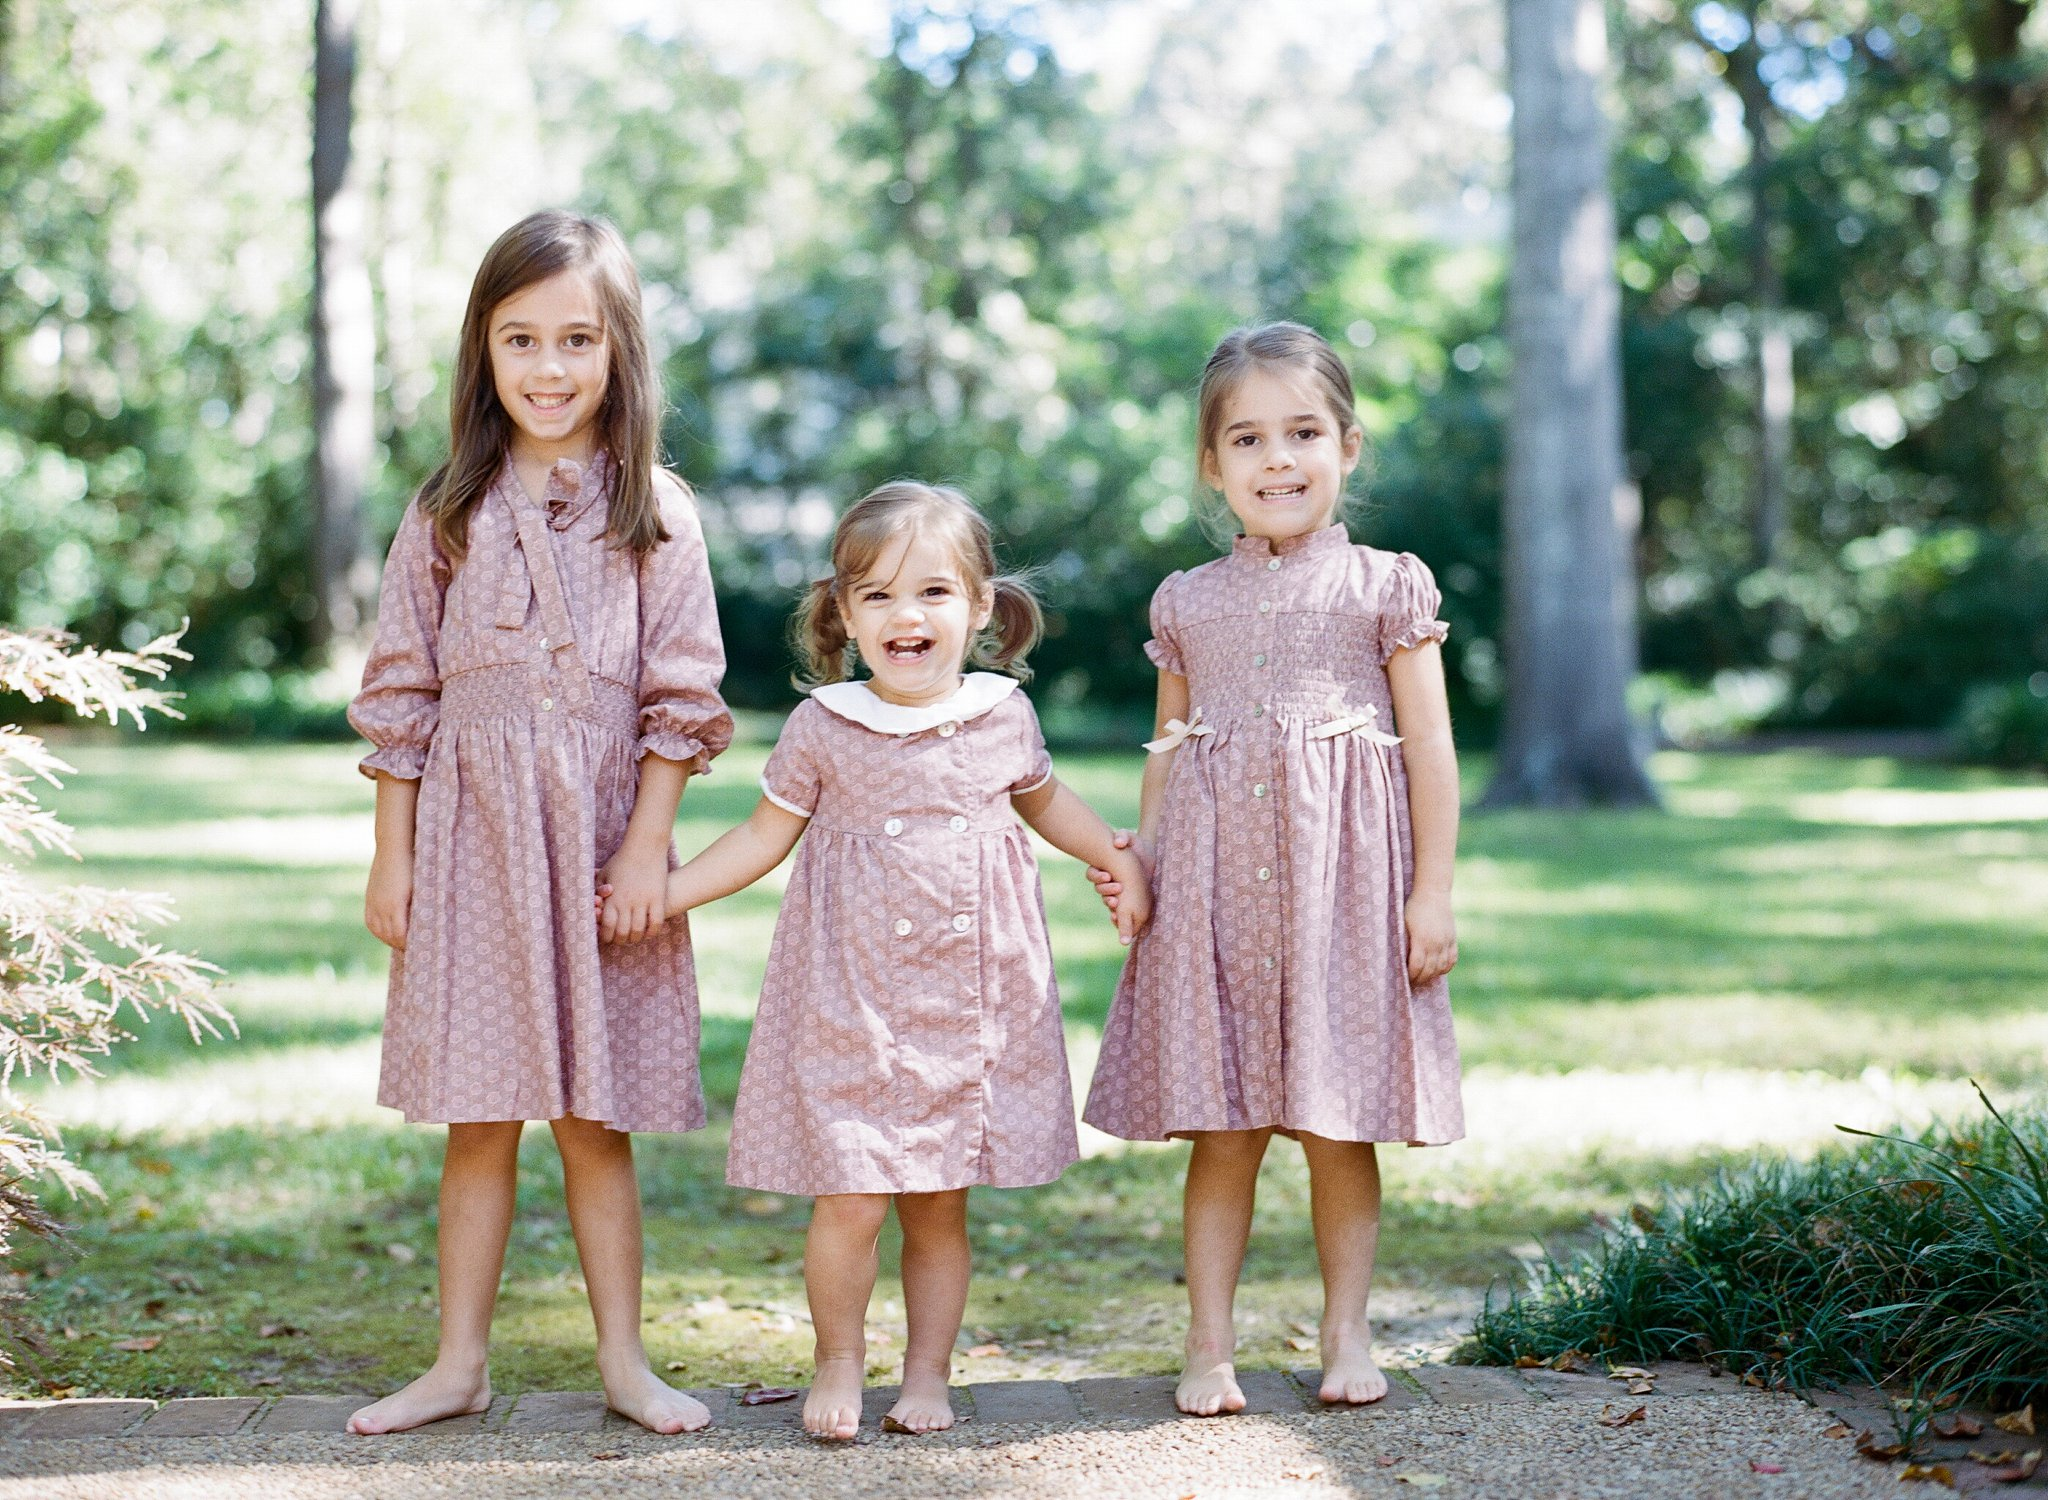 tallahassee family photographer shannon griffin photography_0040.jpg